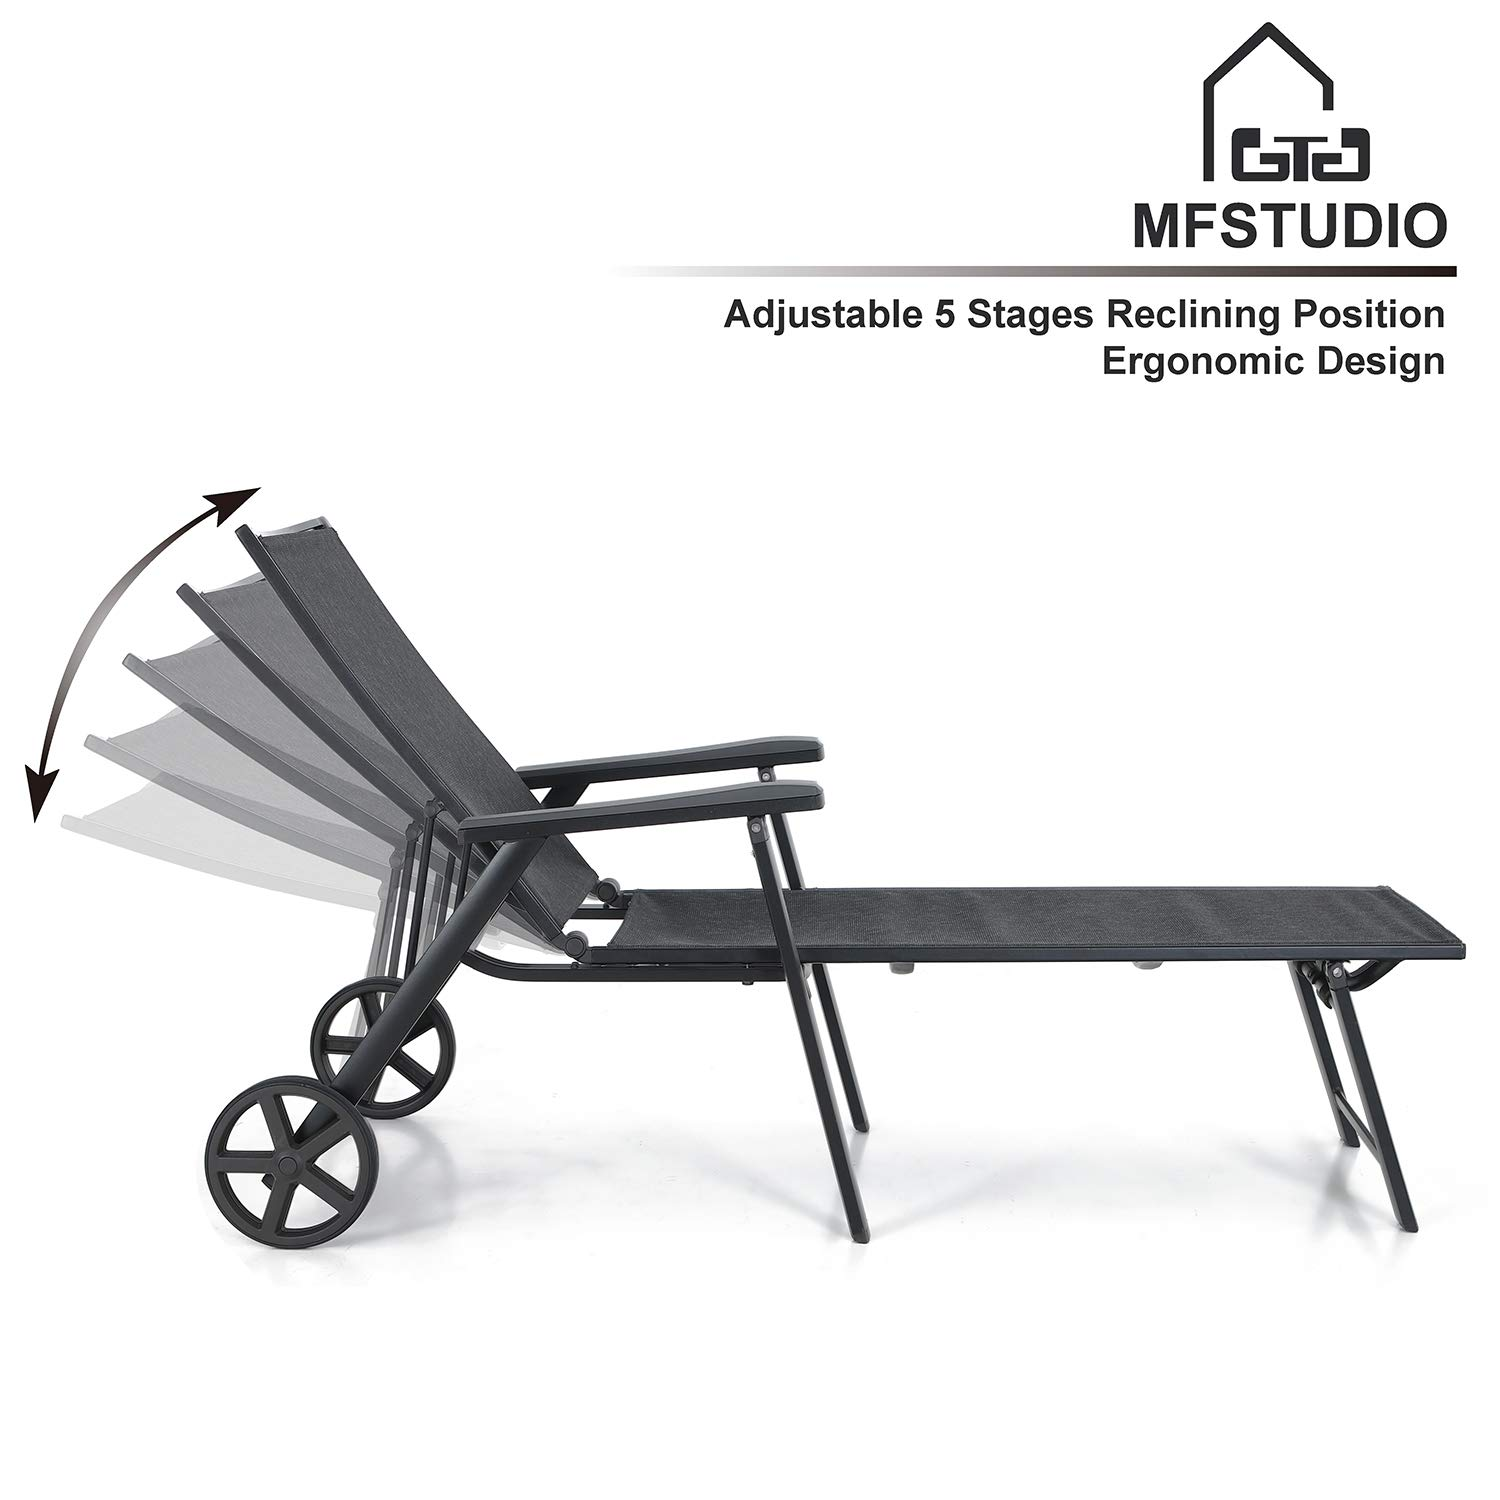 MF STUDIO Sling Chaise Folding Back Adjustable Patio Lounge Chairs Metal Textilene Lounger Recliner Chair W Wheels, Black